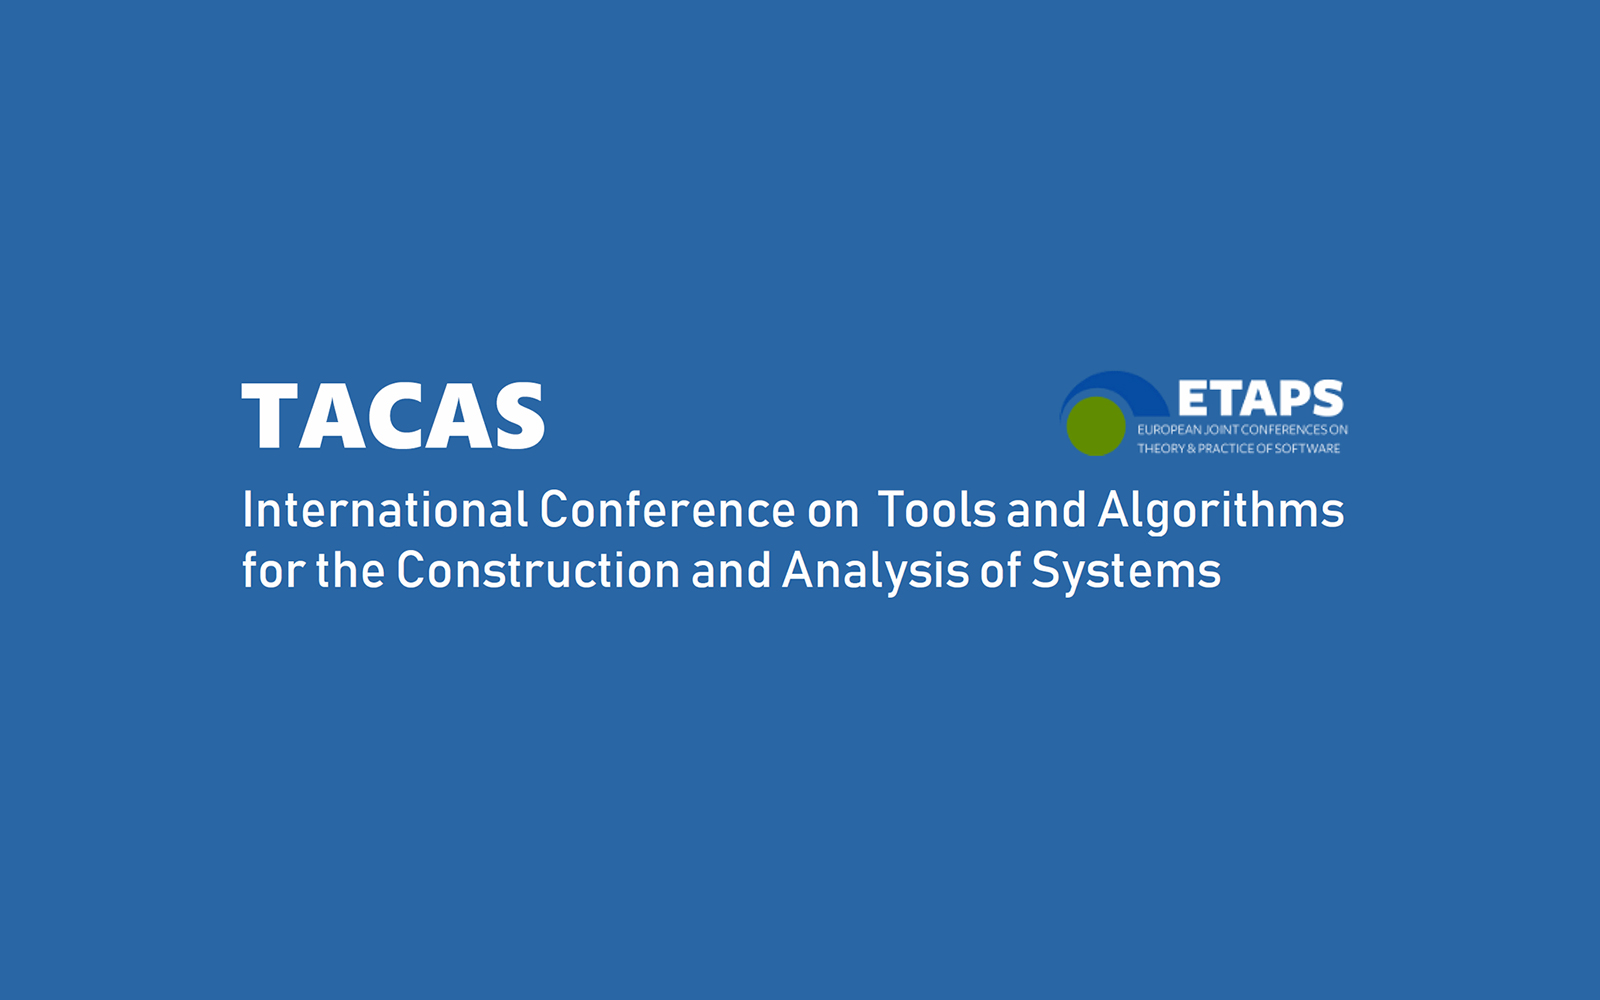 The International Conference on Tools and Algorithms for the Construction and Analysis of Systems  banner